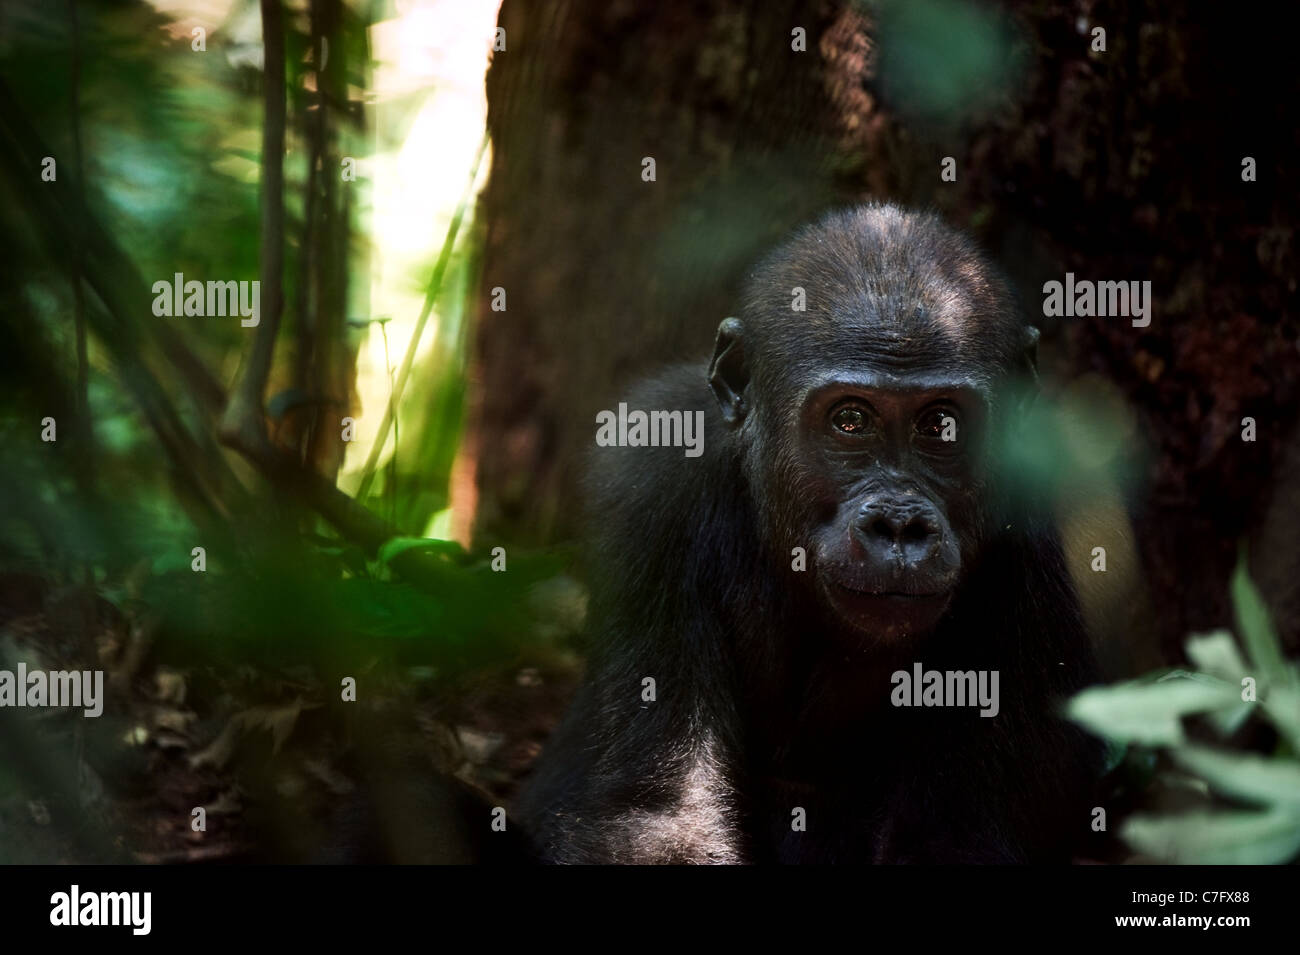 The kid of a lowland gorilla in a native habitat. - Stock Image